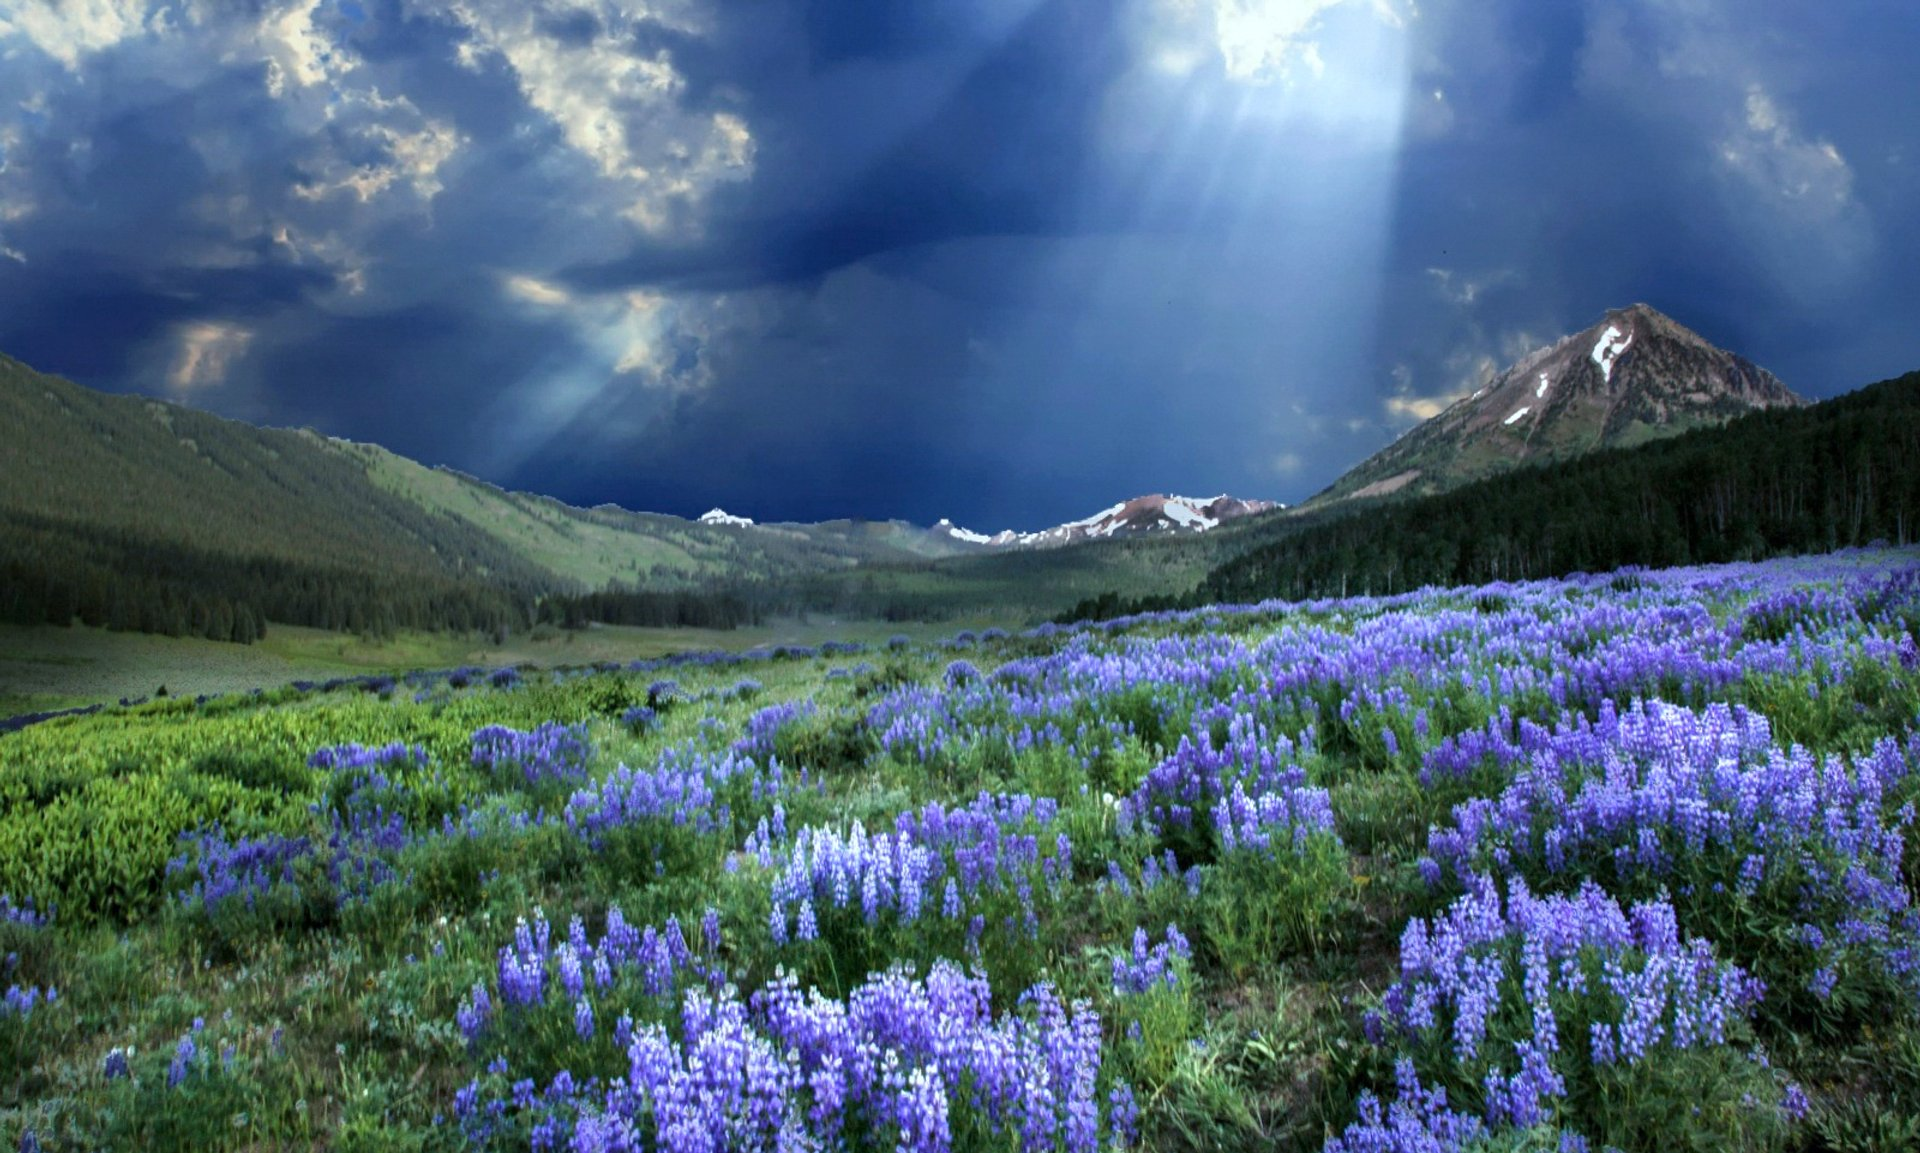 colorado-crested-butte-wildflower-festival.jpg